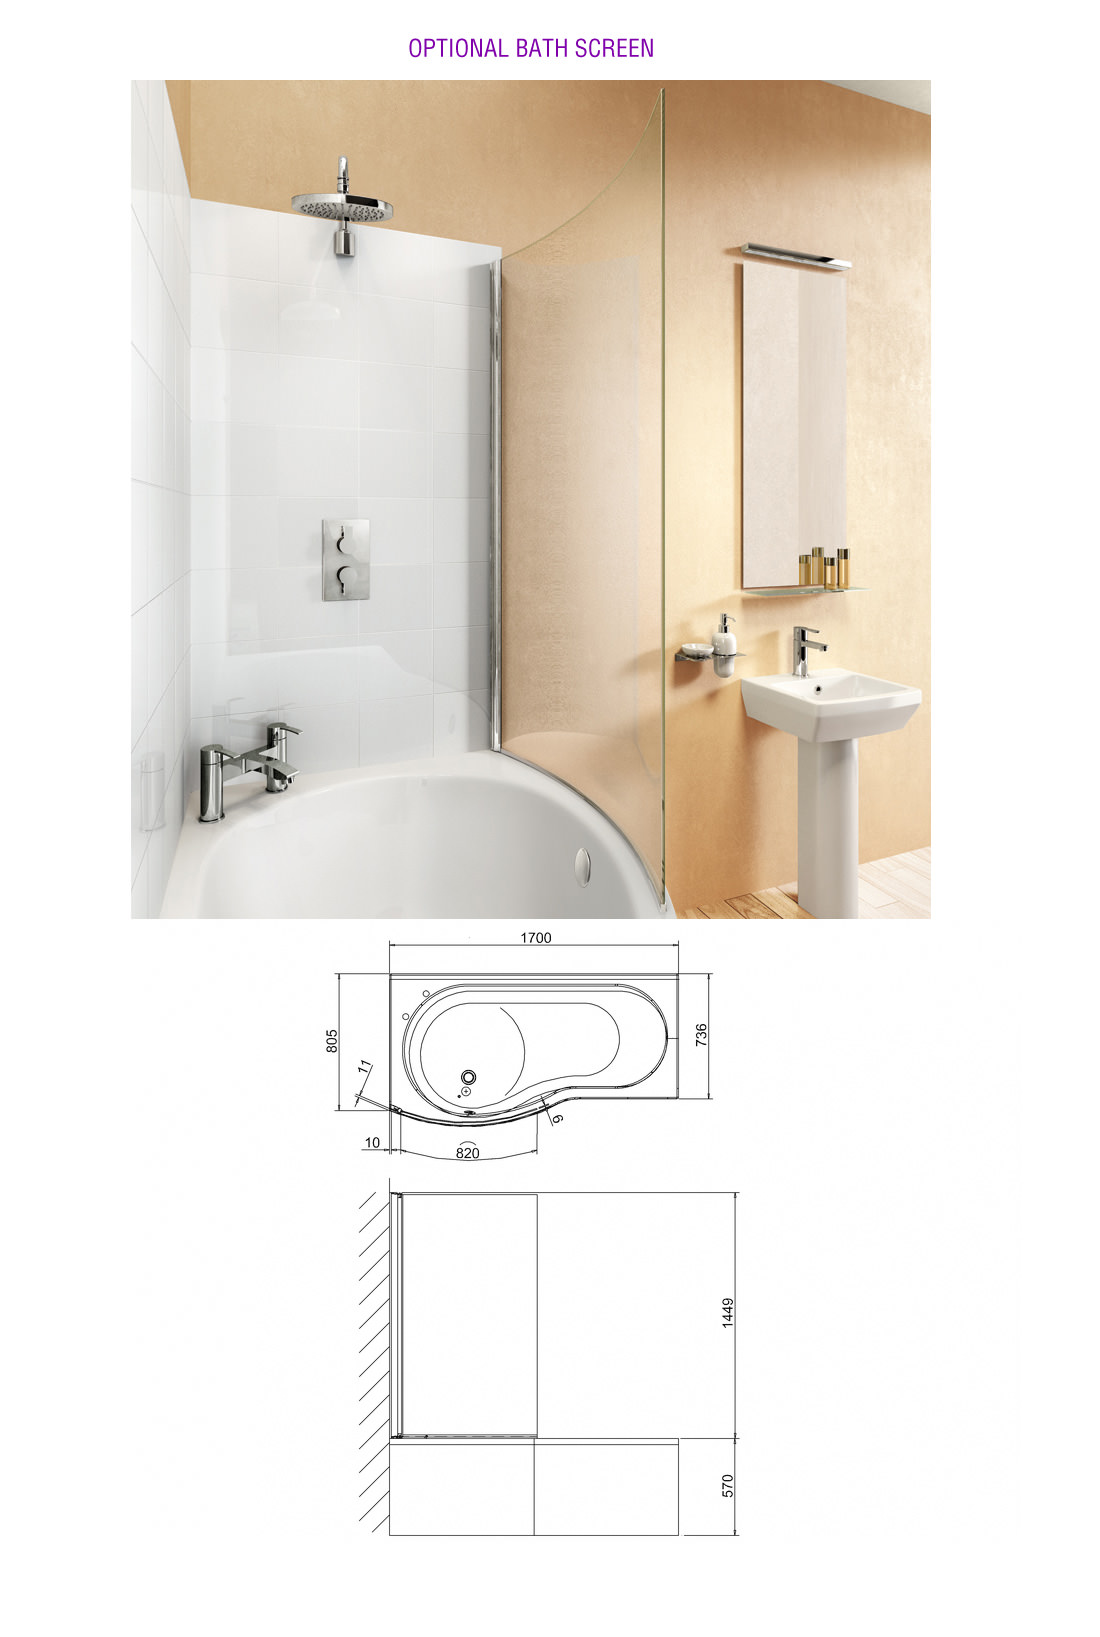 cleargreen ecoround 1500mm x 900mm right handed shower bath best 25 1500mm bath ideas on pinterest small bathroom